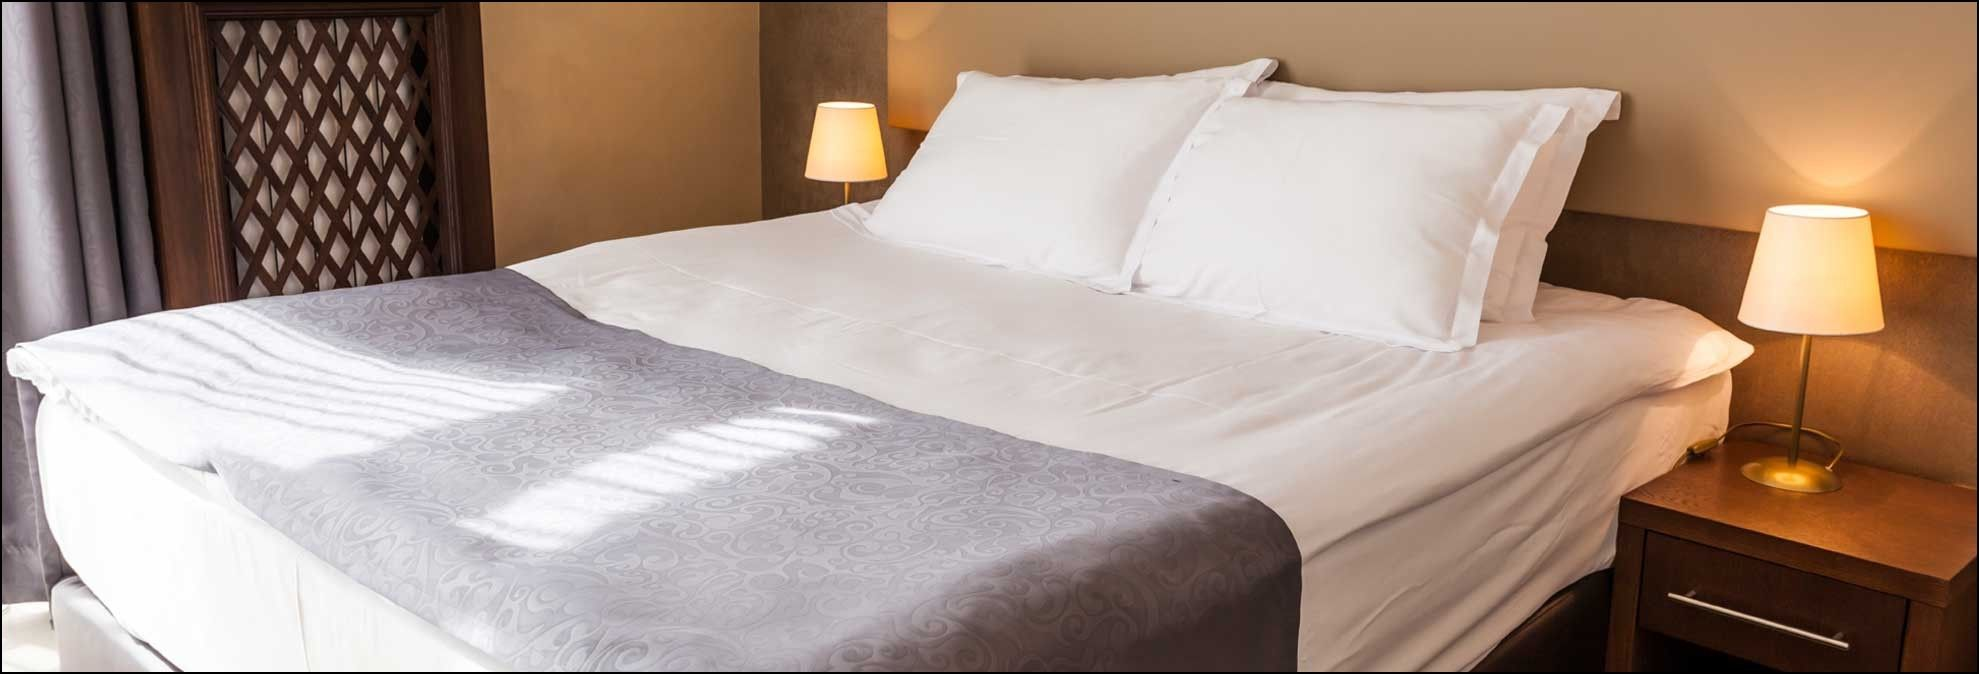 good mattresses for cheap cheapmemoryfoam cheap memory foam